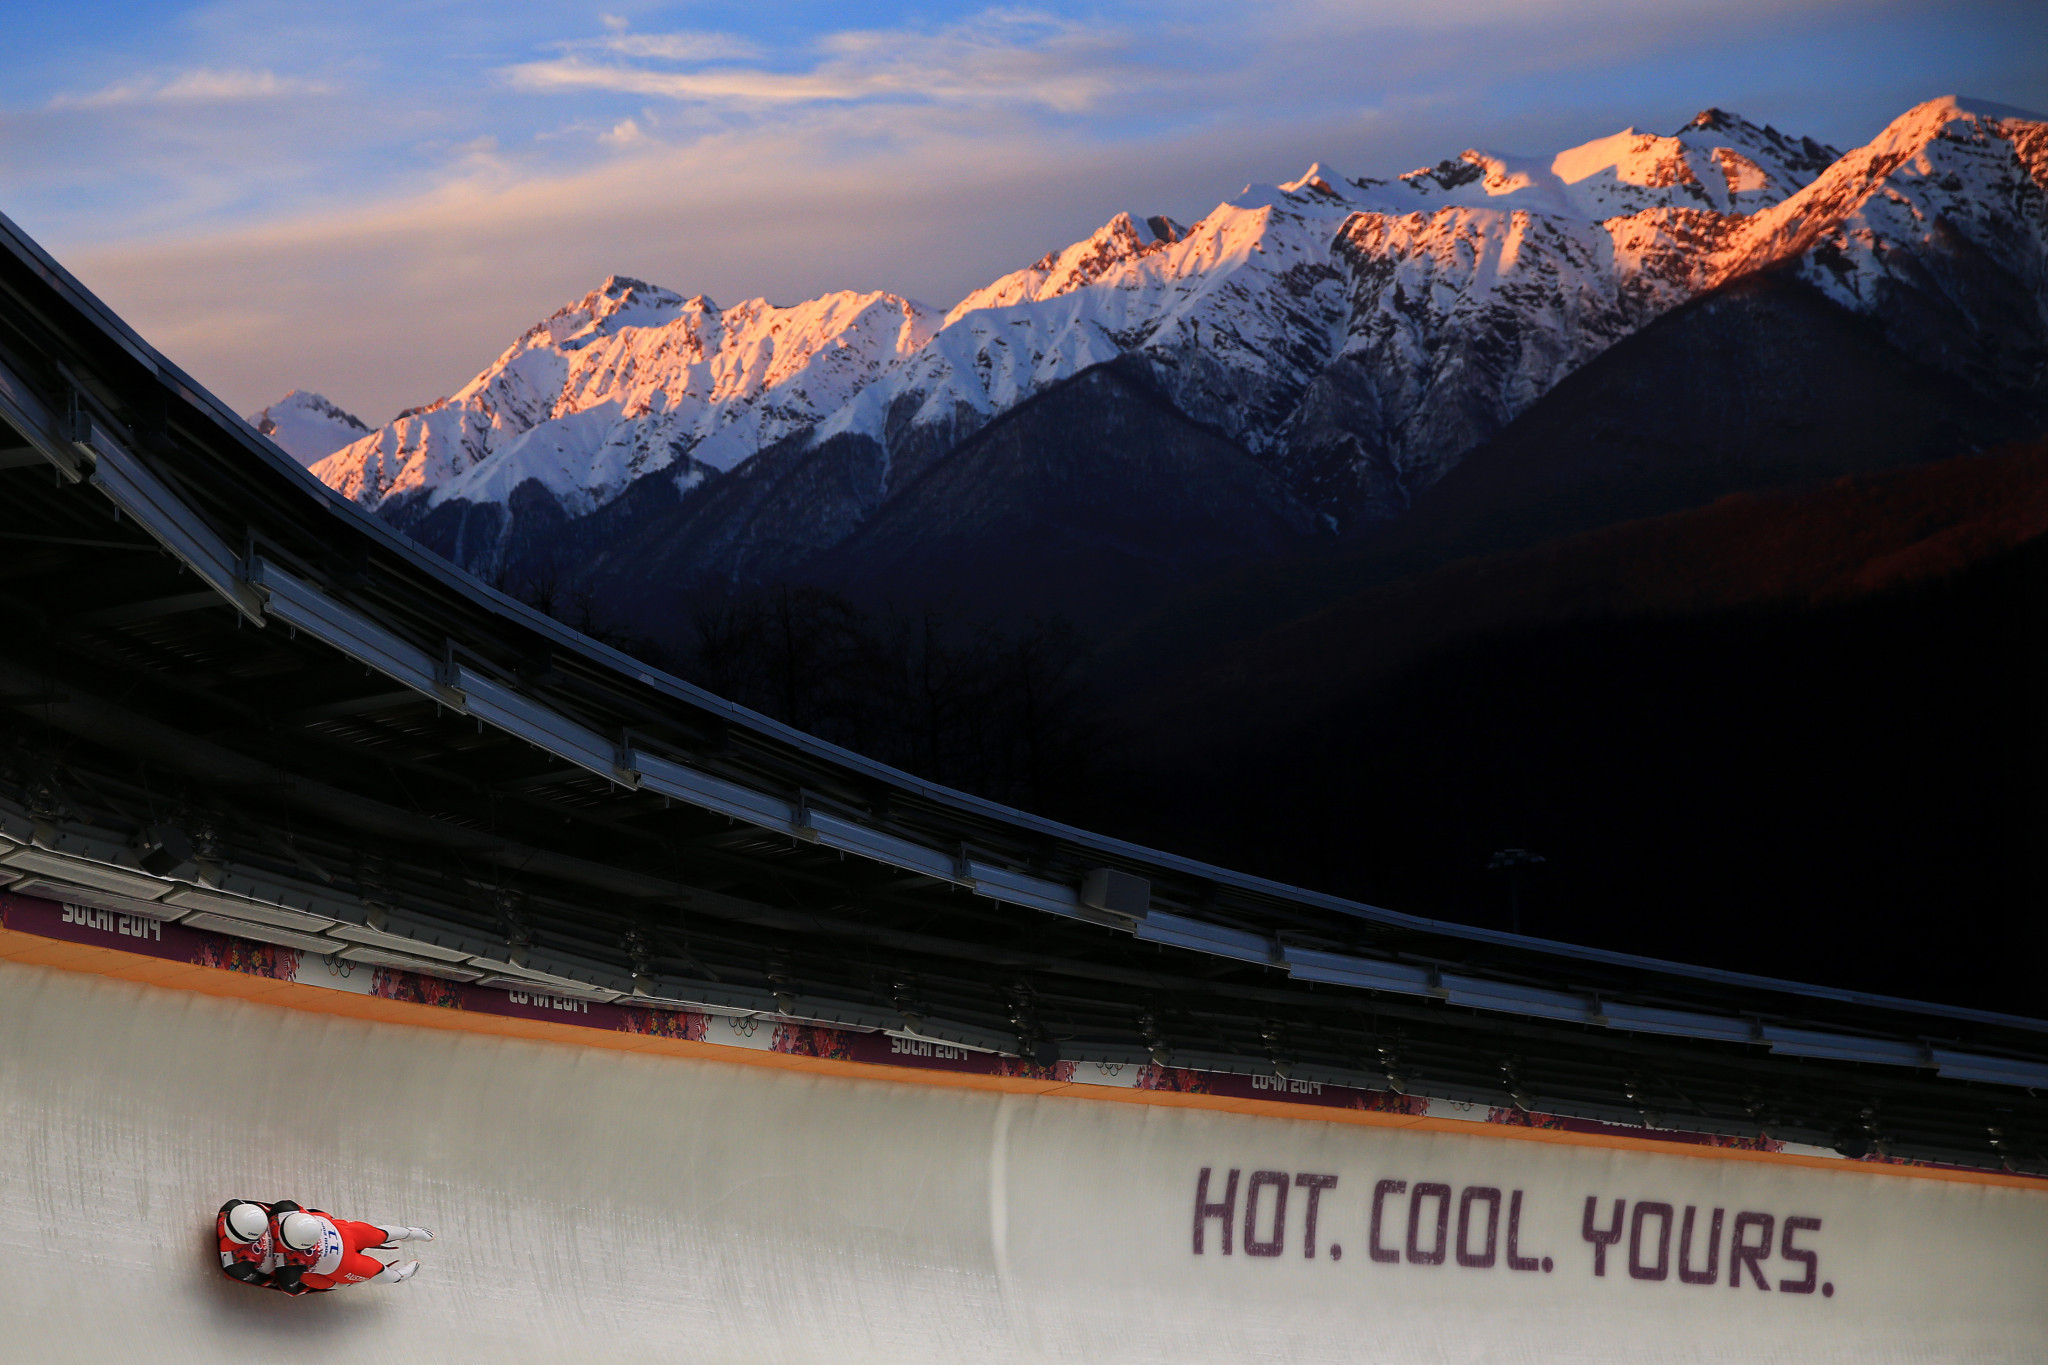 The Russian luge team is scheduled to relocate to Sochi later this month ©Getty Images